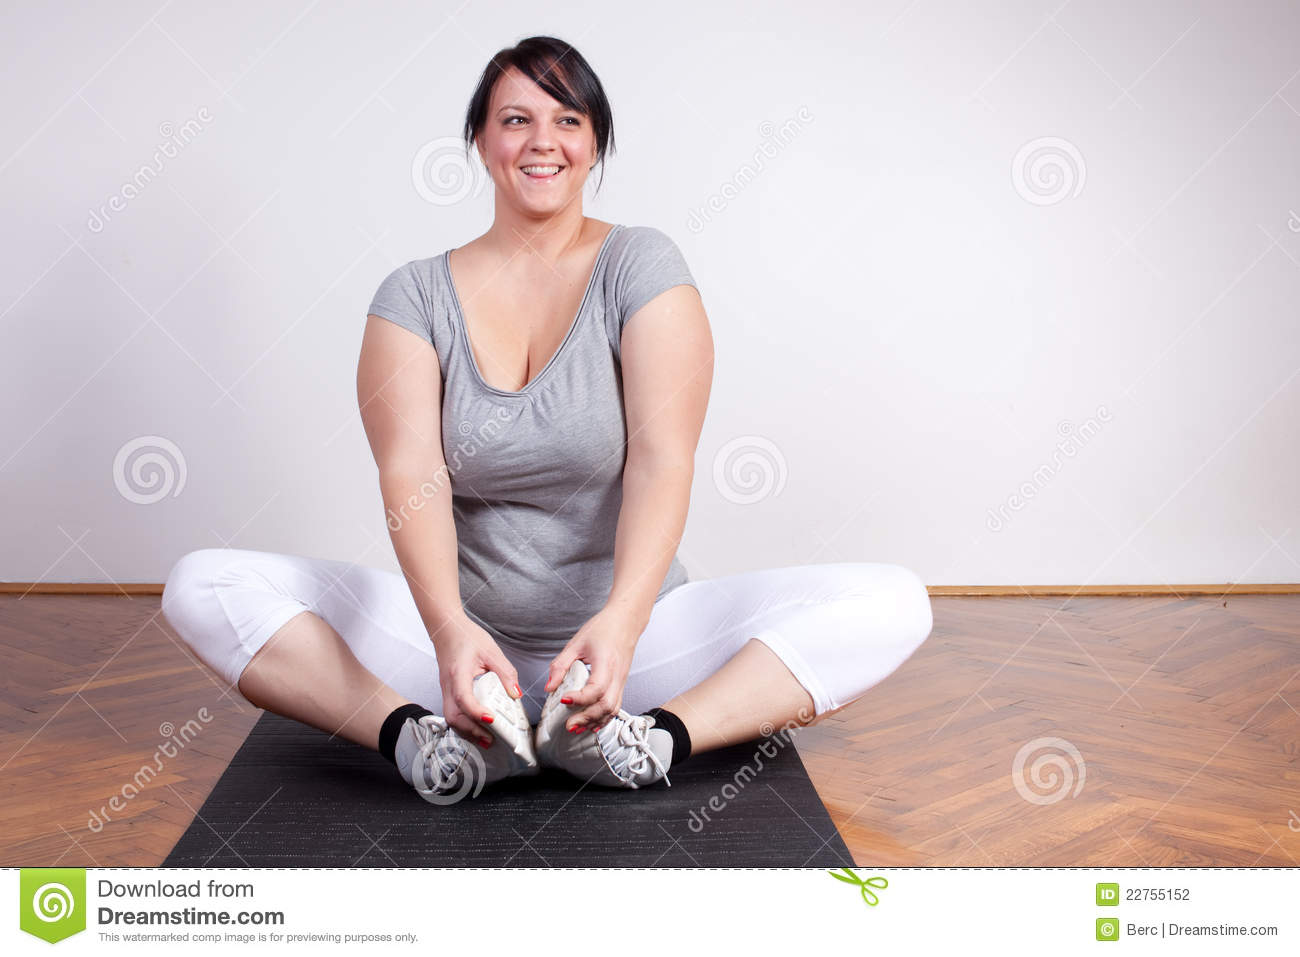 happy-overweight-woman-exercising-stretching-22755152.jpg